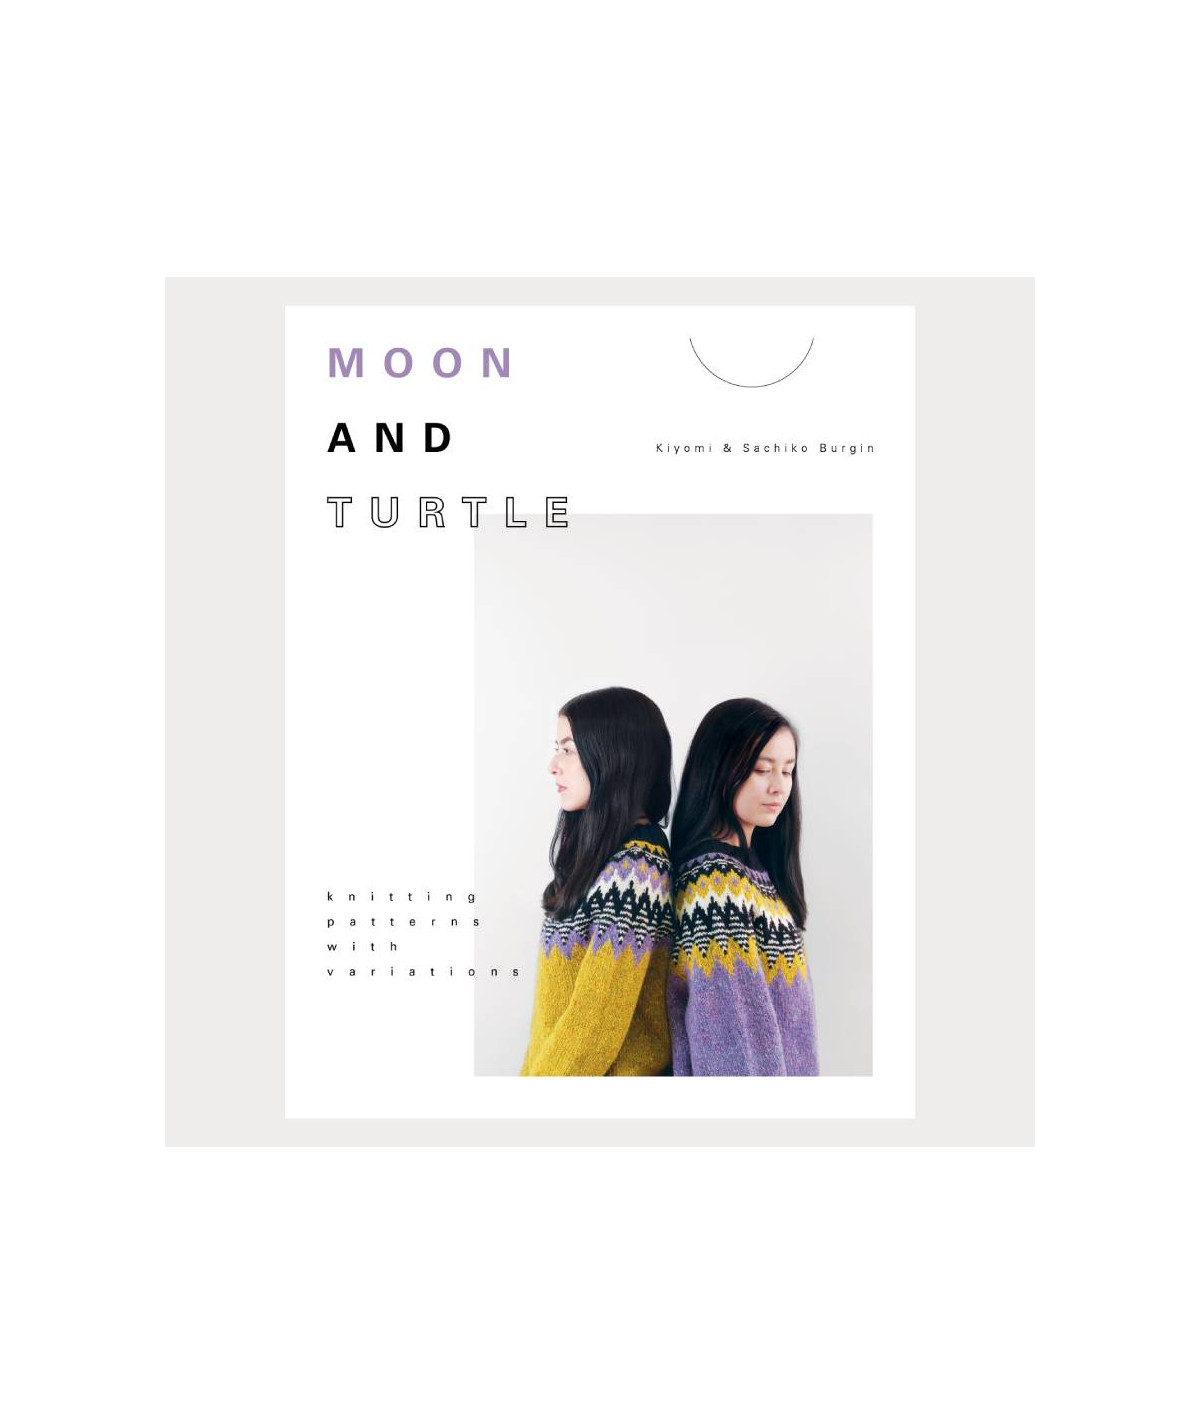 Moon and turtle